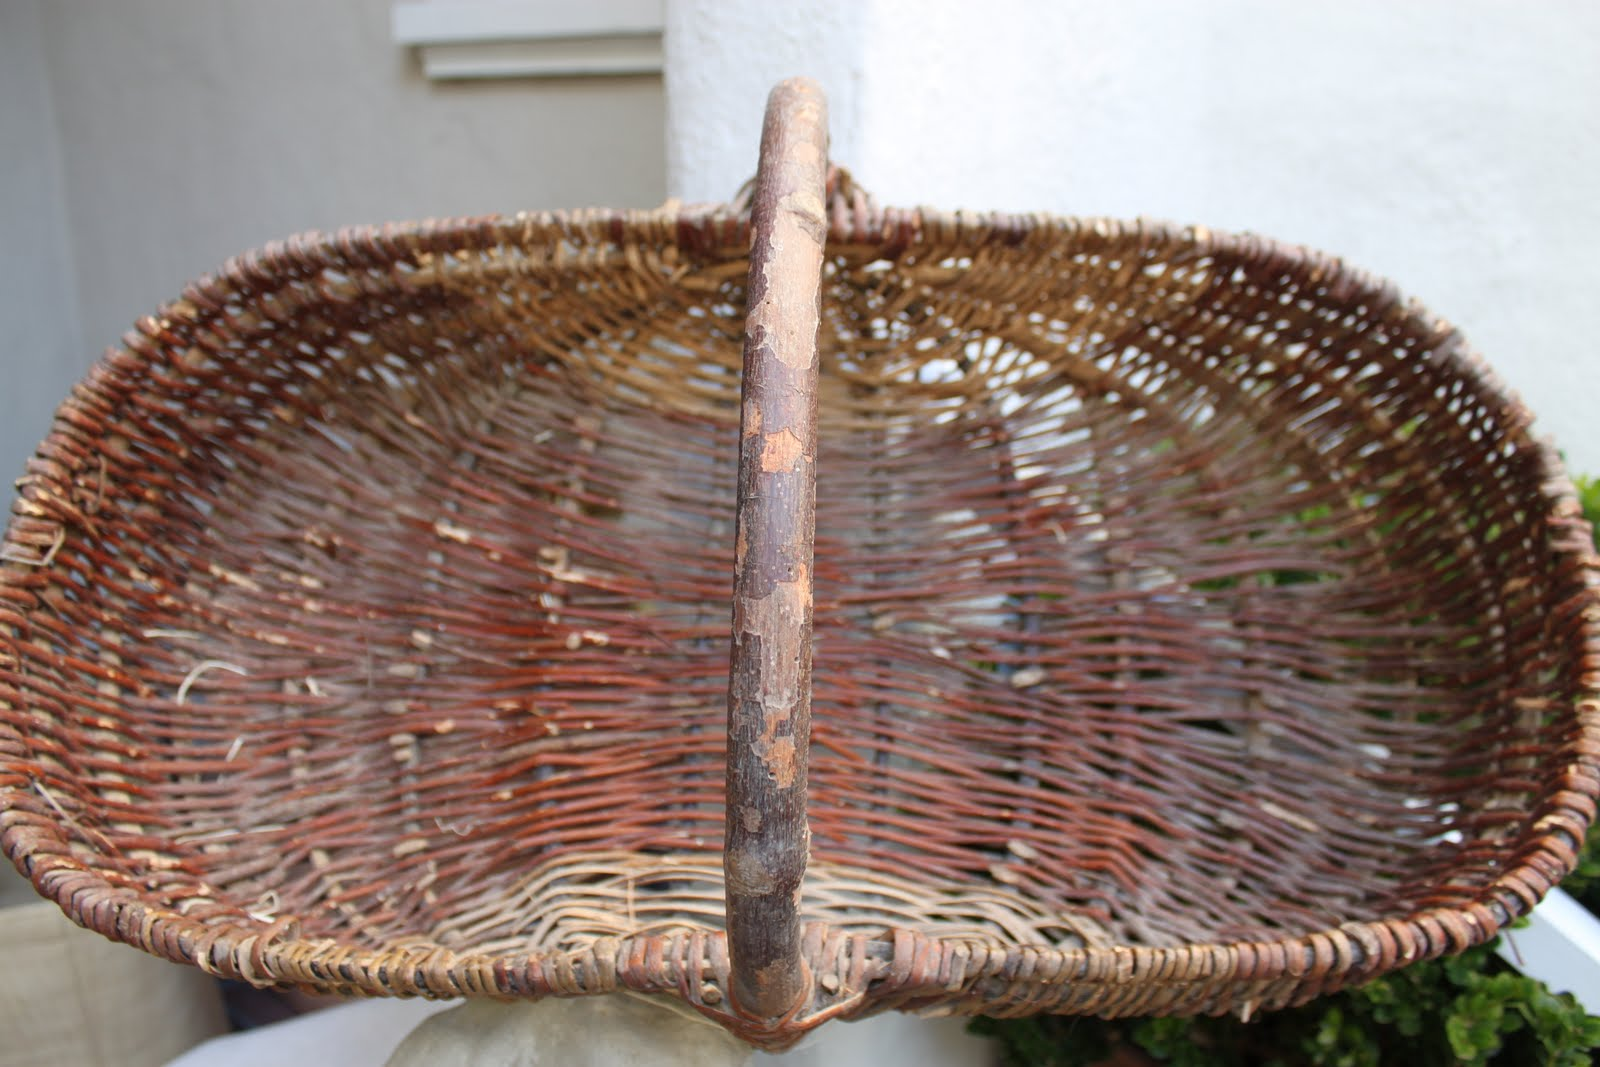 ... Home With A Great Vintage Wine Gathering Basket Or Panier De Vendange  From The Champagne Region; I Love This One; It Is Medium Size So Very  Versatile~